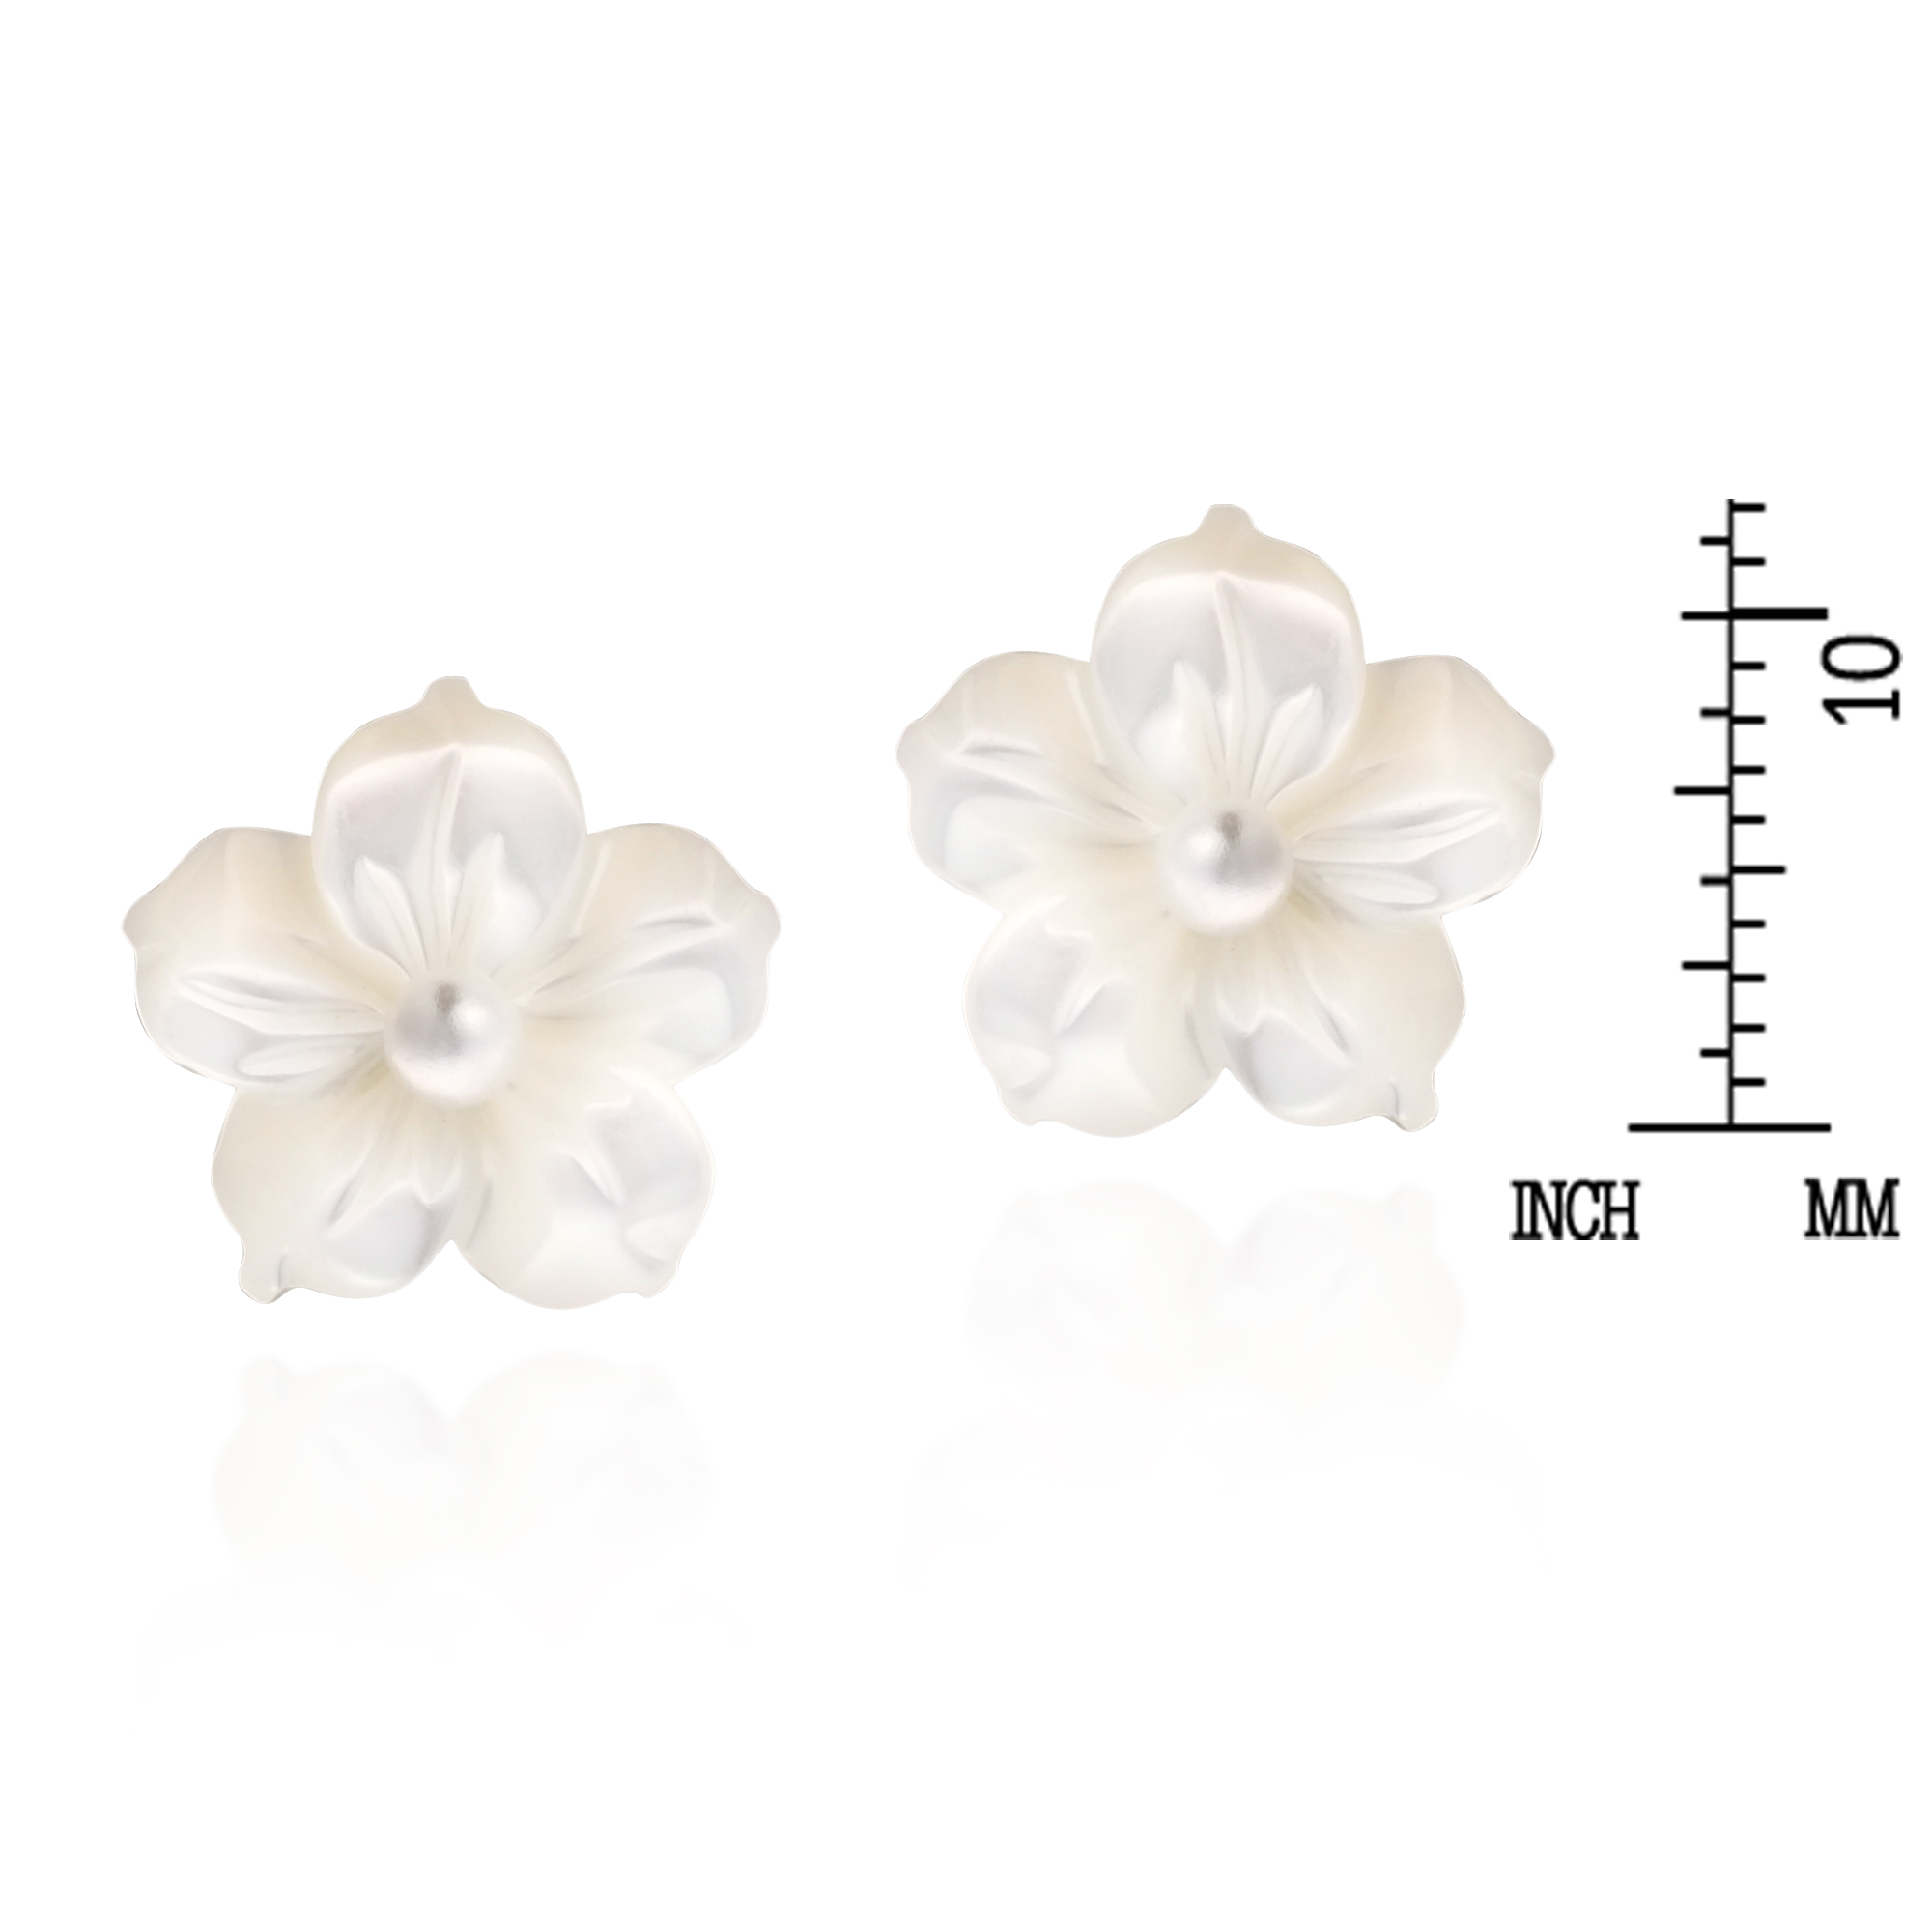 Artisan Khun Jai Transforms The Graceful Beauty Of The Plumeria Flower Into  A Design Of Classy Elegance Hand Carved Mother Of Pearl Fashion The Petals  Of